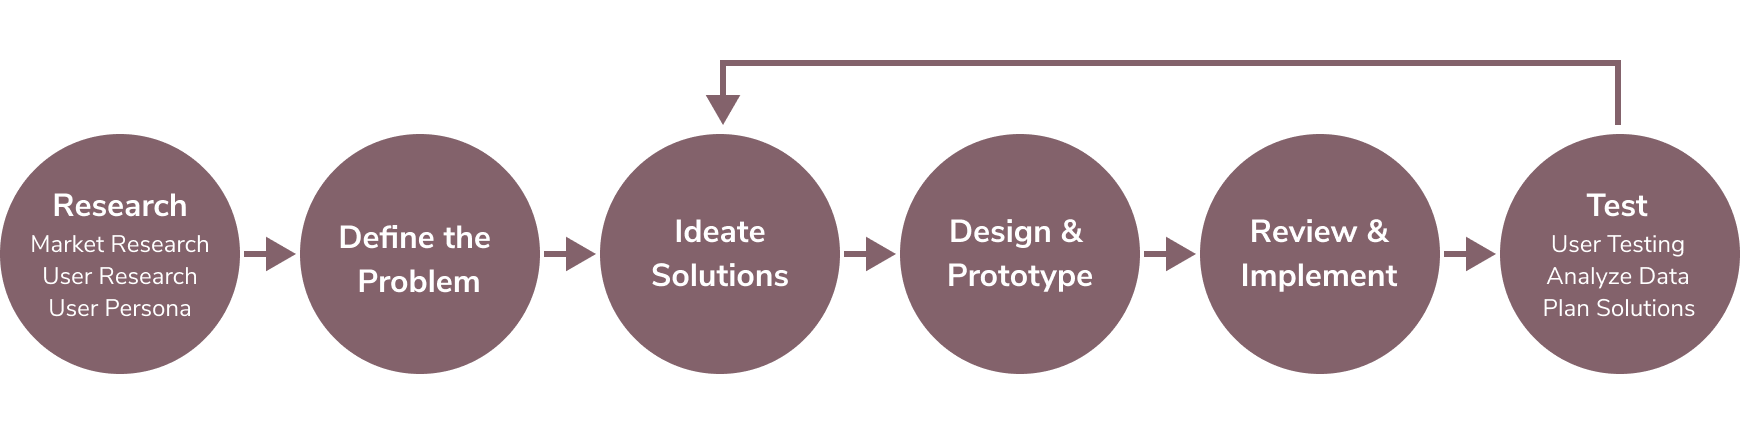 """A diagram depicting Alex's design process. The diagram shows six circles in a horizontal line. Each circle has an arrow pointing to the next circle in the line. The circles have text inside which reads as follows: circle one: Research Market Research User Research User Persona, circle two: Define the Problem, circle three: Ideate Solutions, circle four: Design and Prototype, circle five: Review and Implement, circle six: Test User Testing Analyze Data Plan Solutions. The sixth circle has a line above it which turns left and connects it back to the third circle which reads """"Ideate Solutions"""" which shows that once testing is complete Alex returns to ideate new solutions and begins the process again until the design is perfected or the constraints of the project requires the product to be launched."""